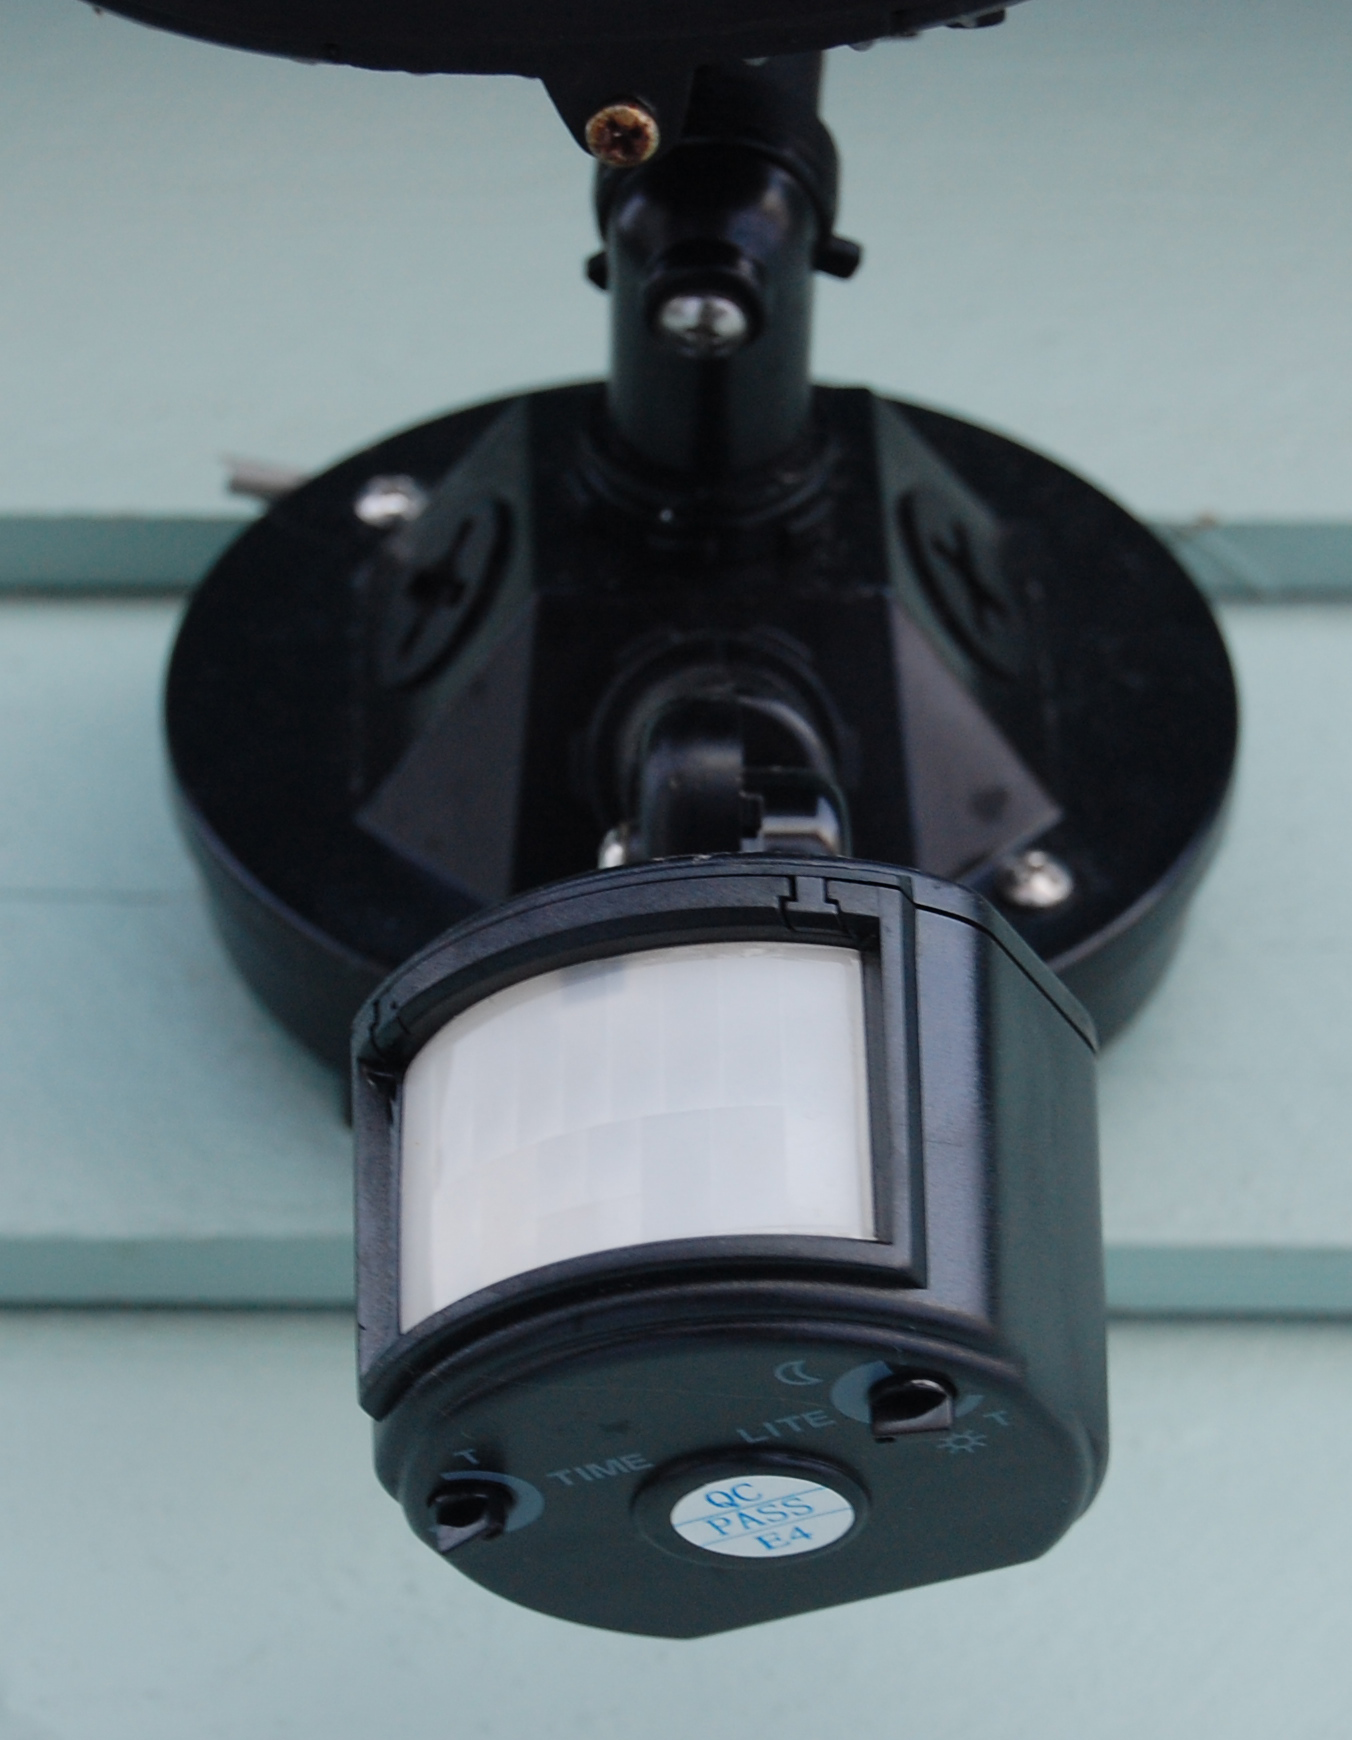 Motion detectors like this one can be installed discreetly and efficiently by Cutrona Electric.